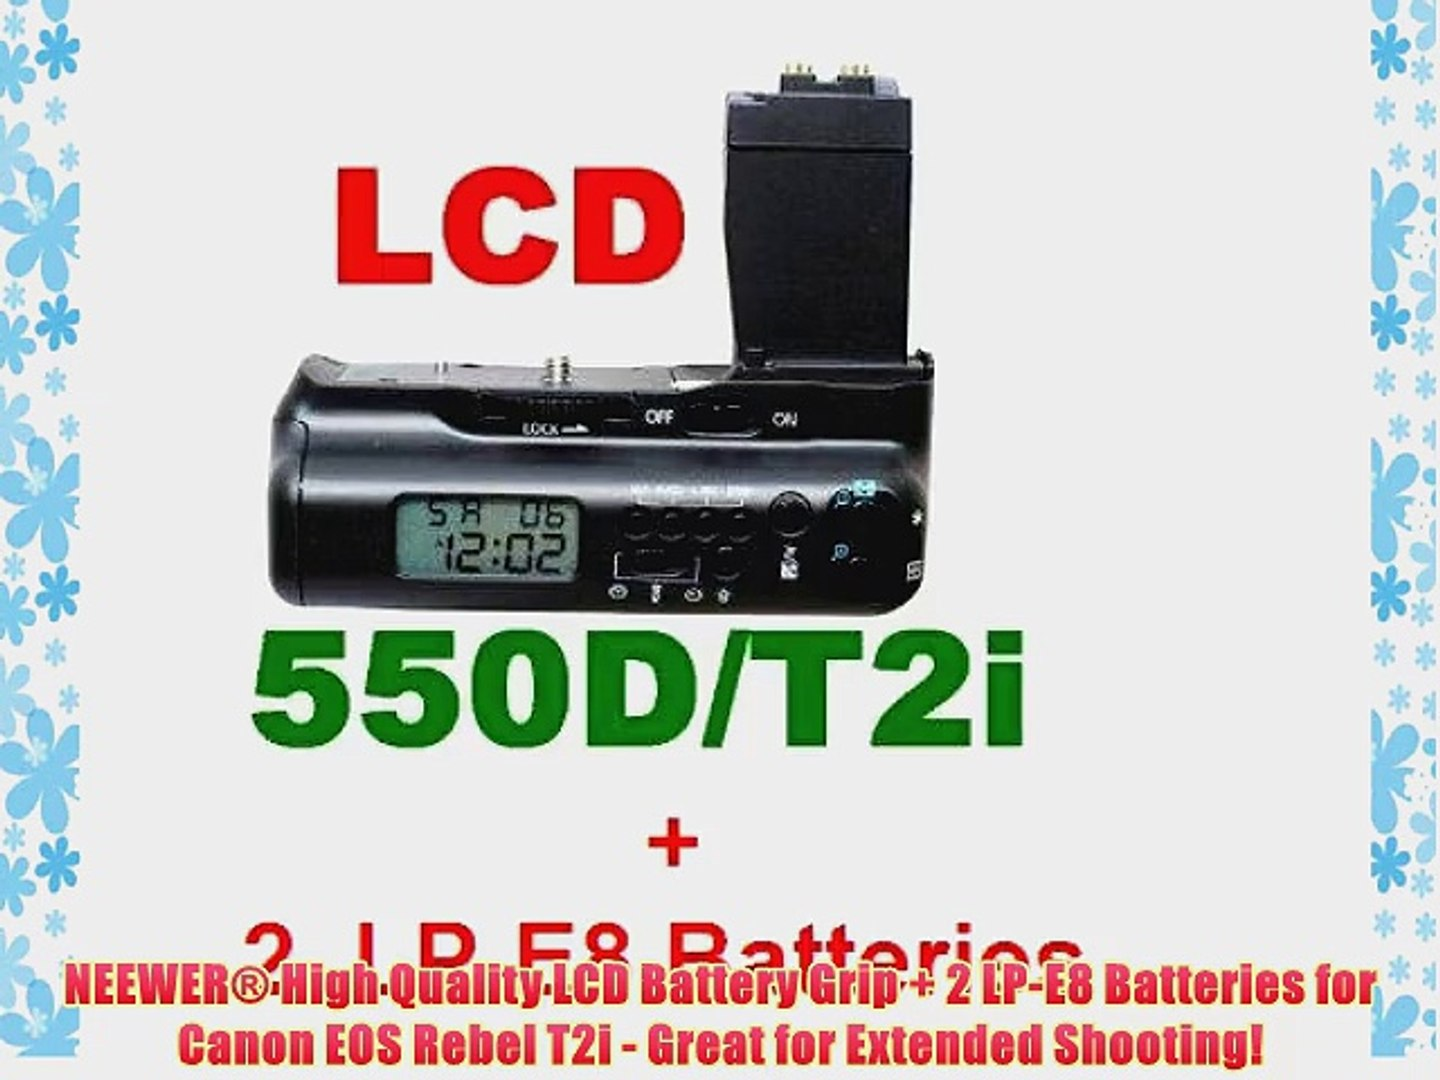 NEEWER? High Quality LCD Battery Grip   2 LP-E8 Batteries for Canon EOS Rebel T2i - Great for